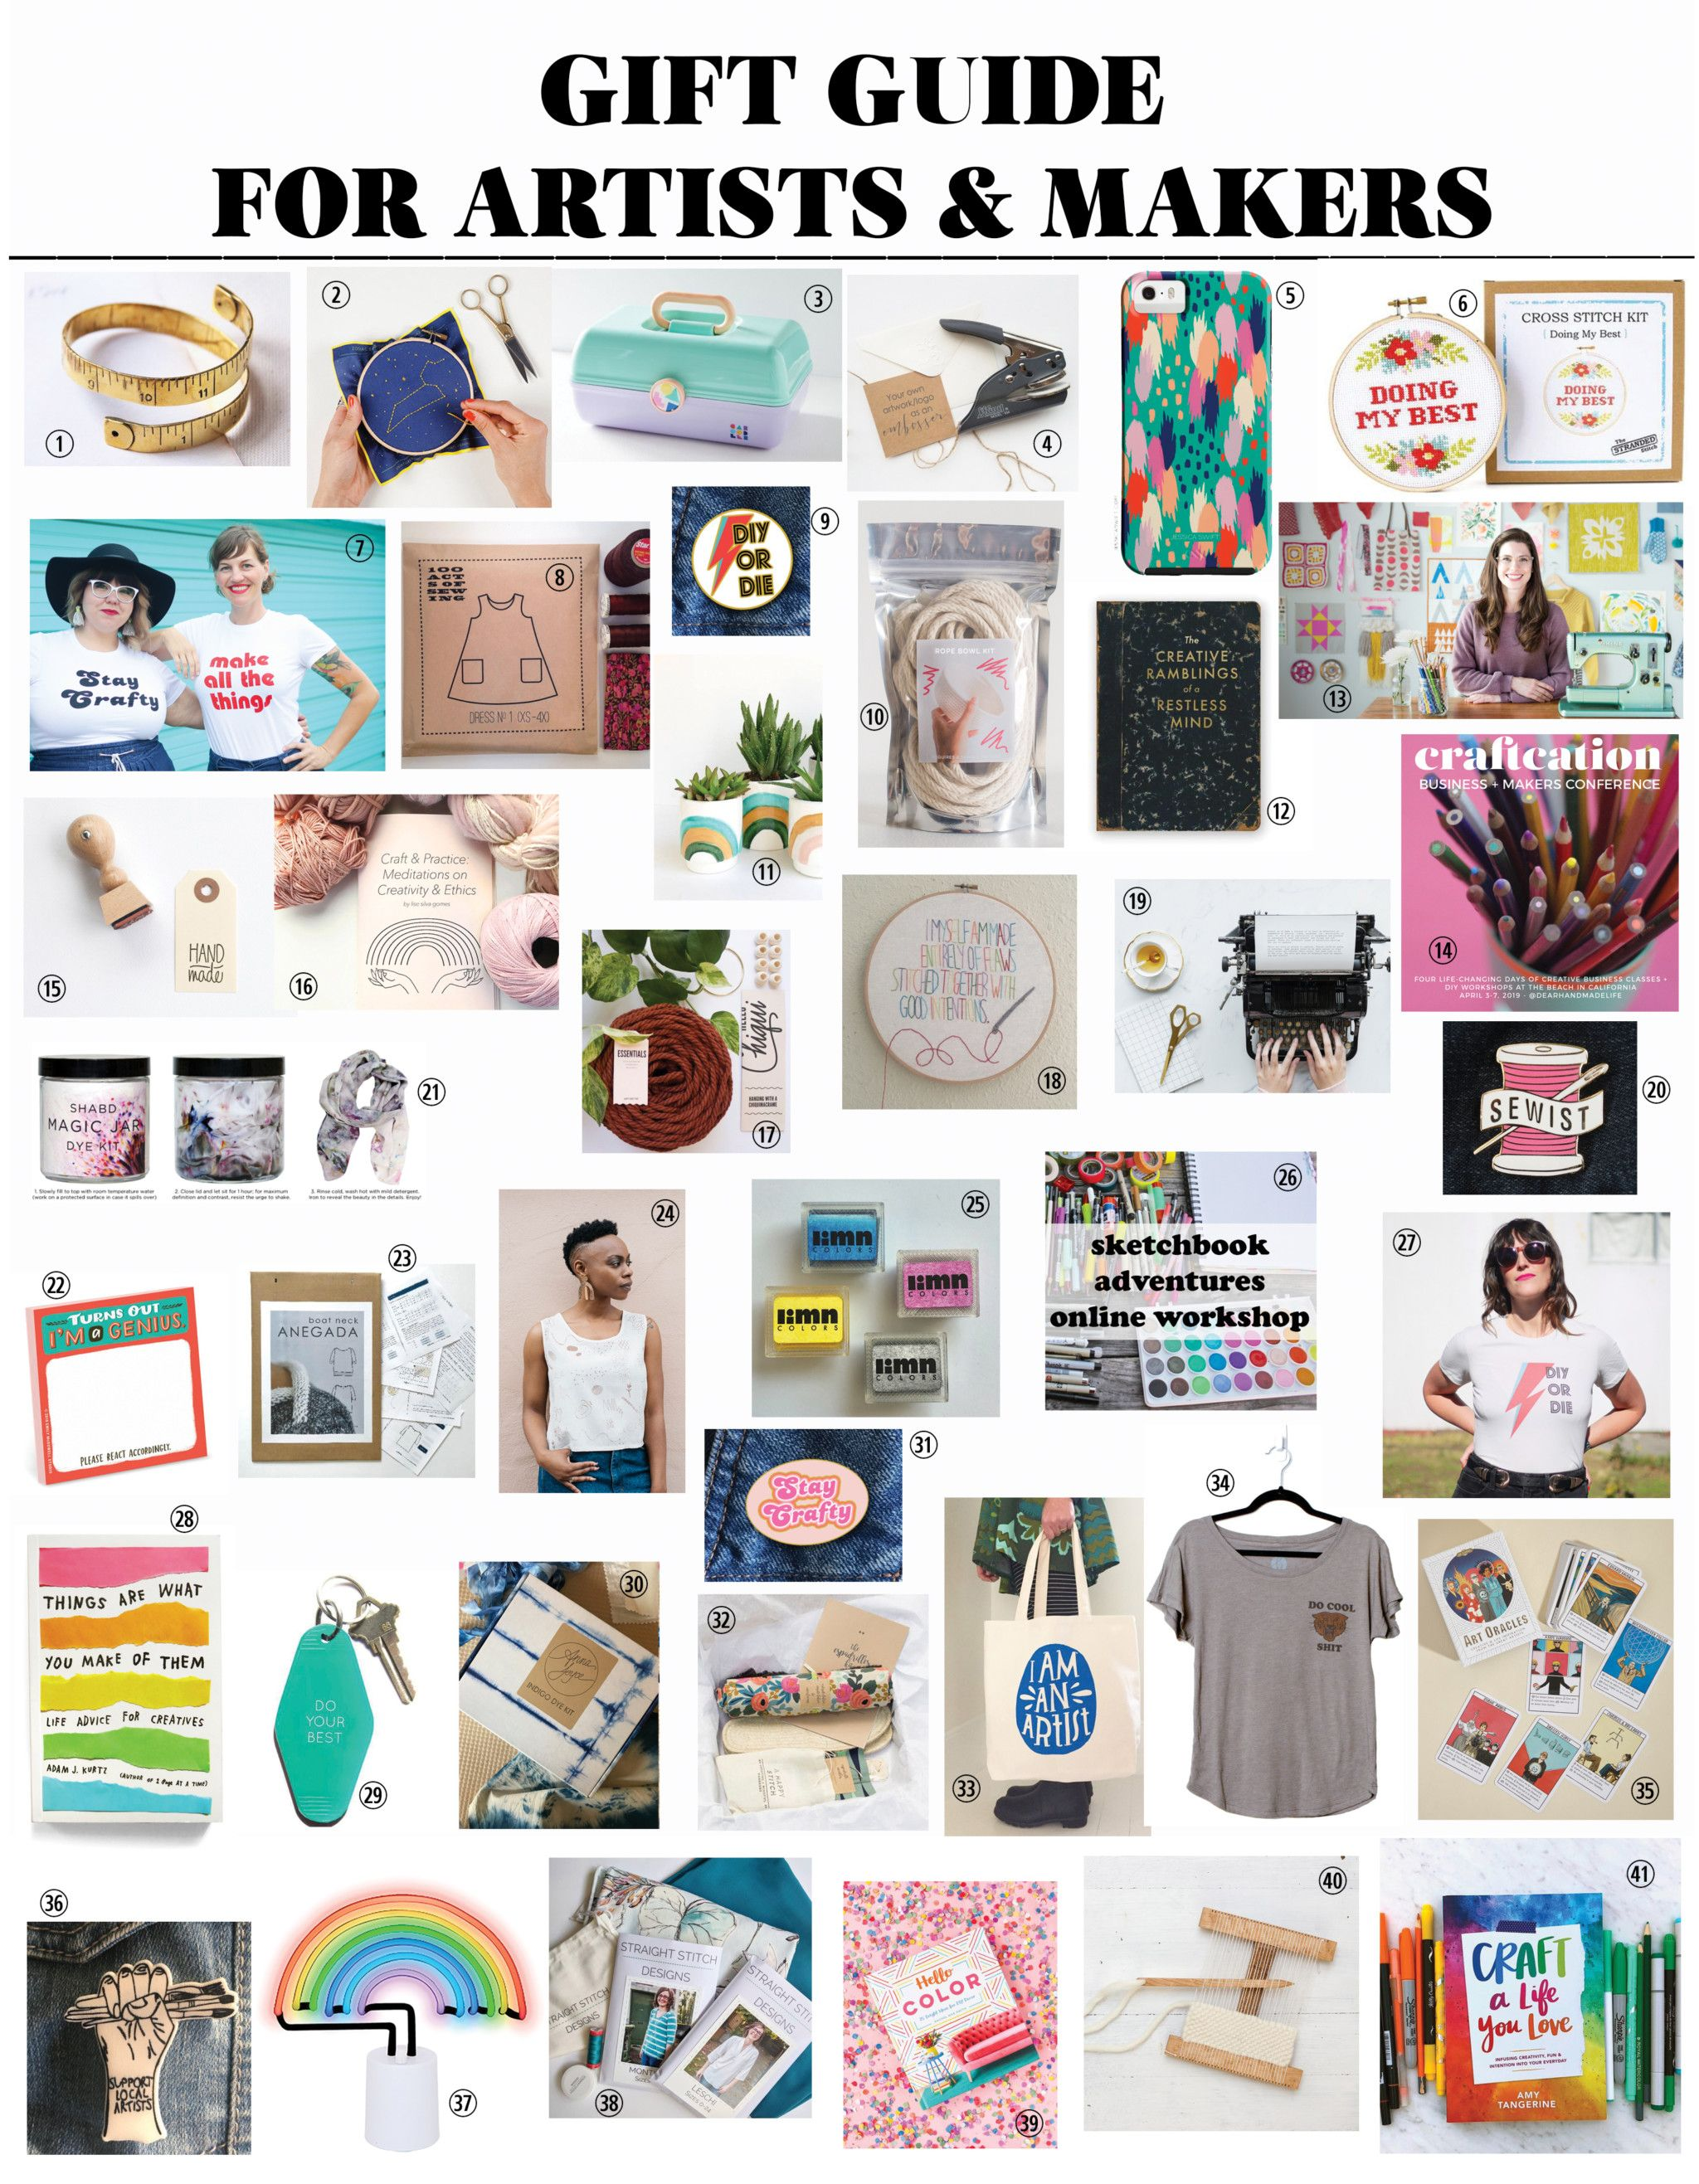 Gift Guide For Artists Makers Creatives Crafters DIYers From Dear Handmade Life